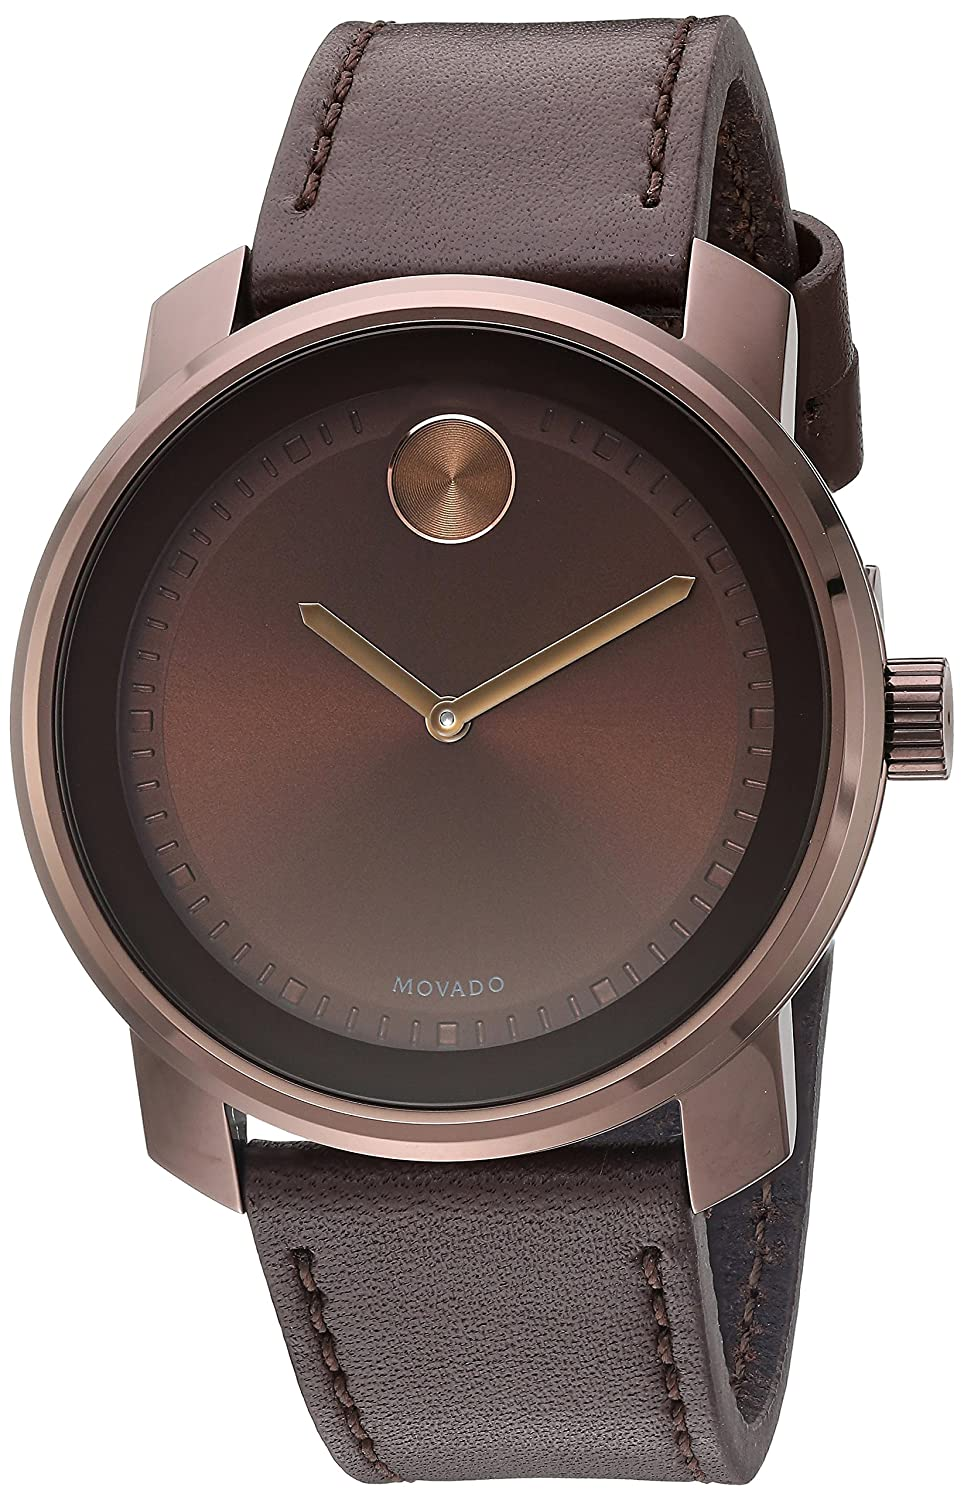 Movado Men s Stainless Steel Swiss-Quartz Watch with Leather Strap, Brown, 22 Model 3600377